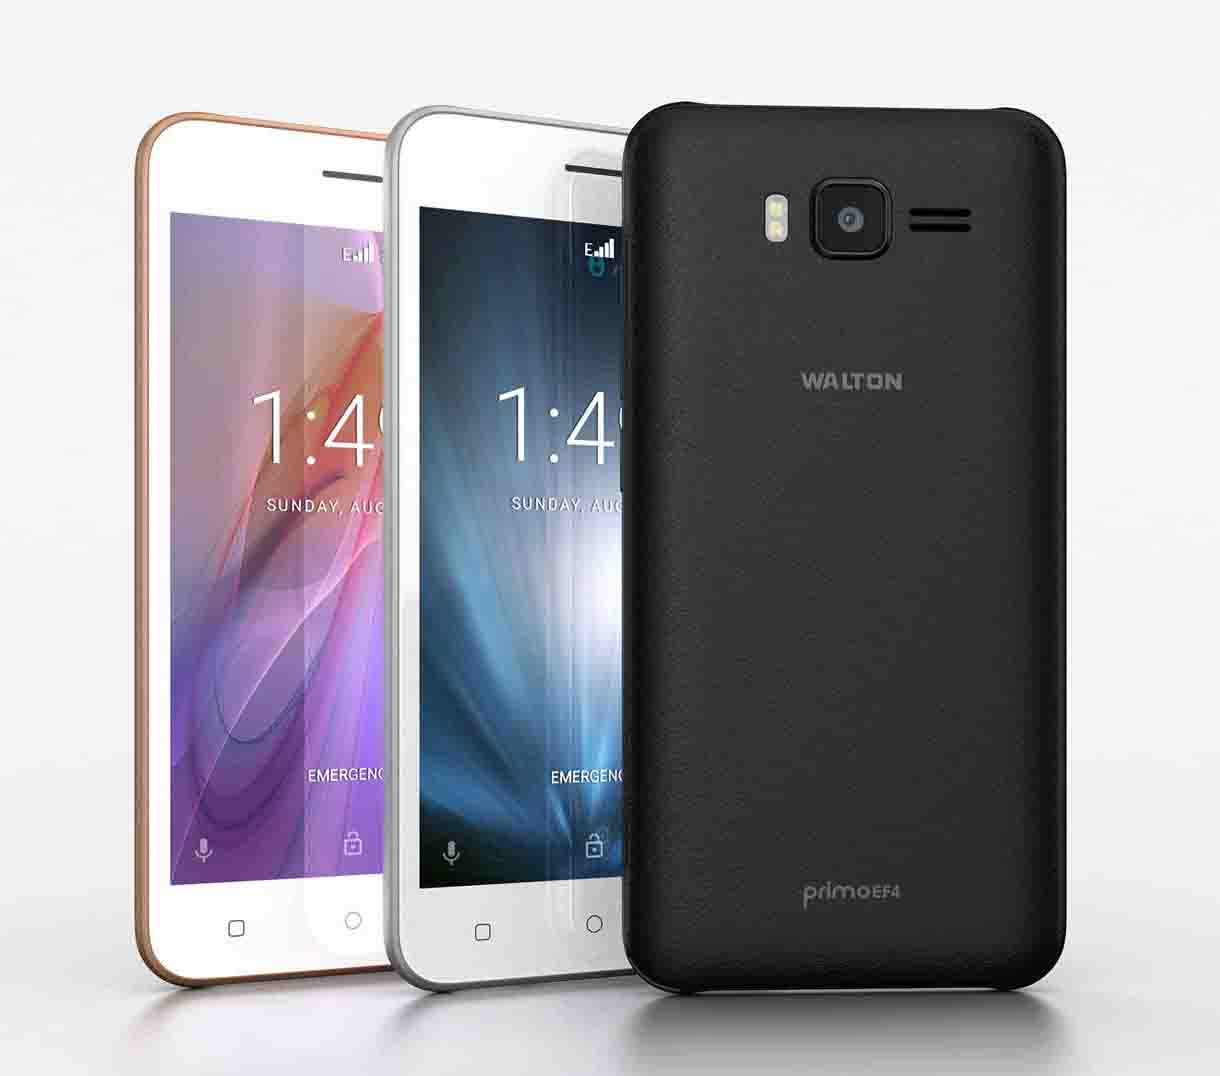 Root and Install TWRP Recovery on Walton Primo EF4, How to Root Walton Primo EF4, Install TWRP Recovery on Walton Primo EF4, Root Walton Primo EF4 Using supersu